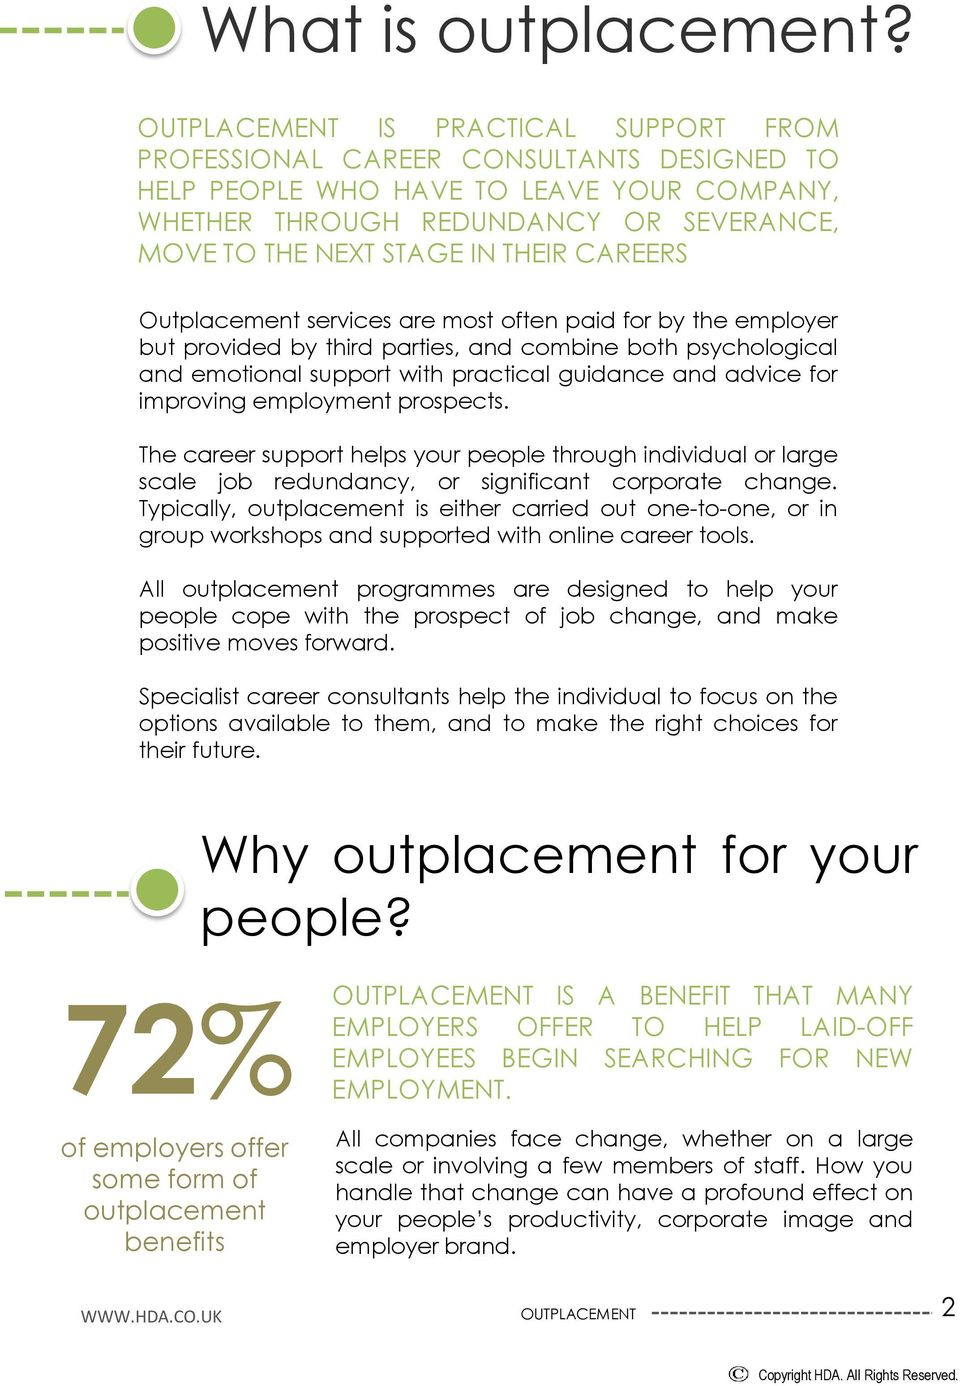 Outplacement services are most often paid for by the employer but provided by third parties, and combine both psychological and emotional support with practical guidance and advice for improving